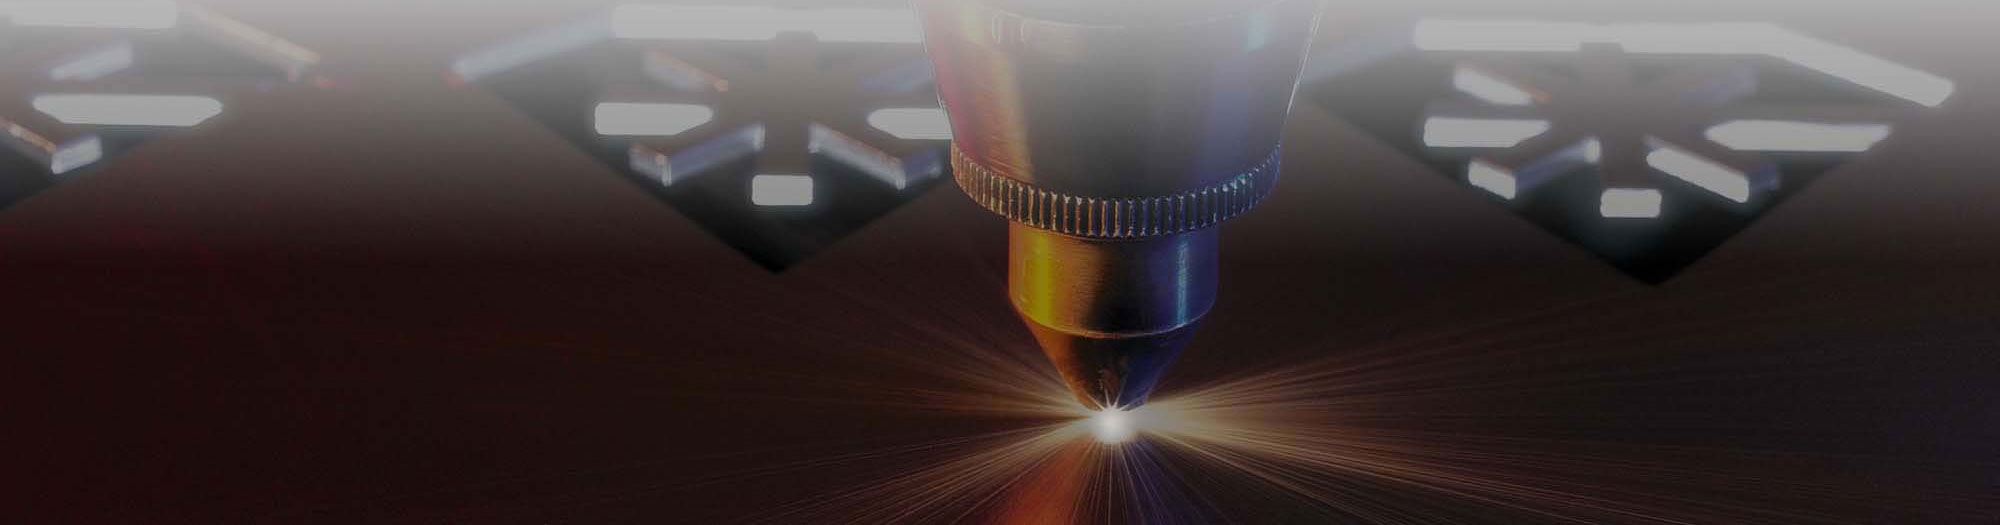 Industrial Lasers for Materials Processing